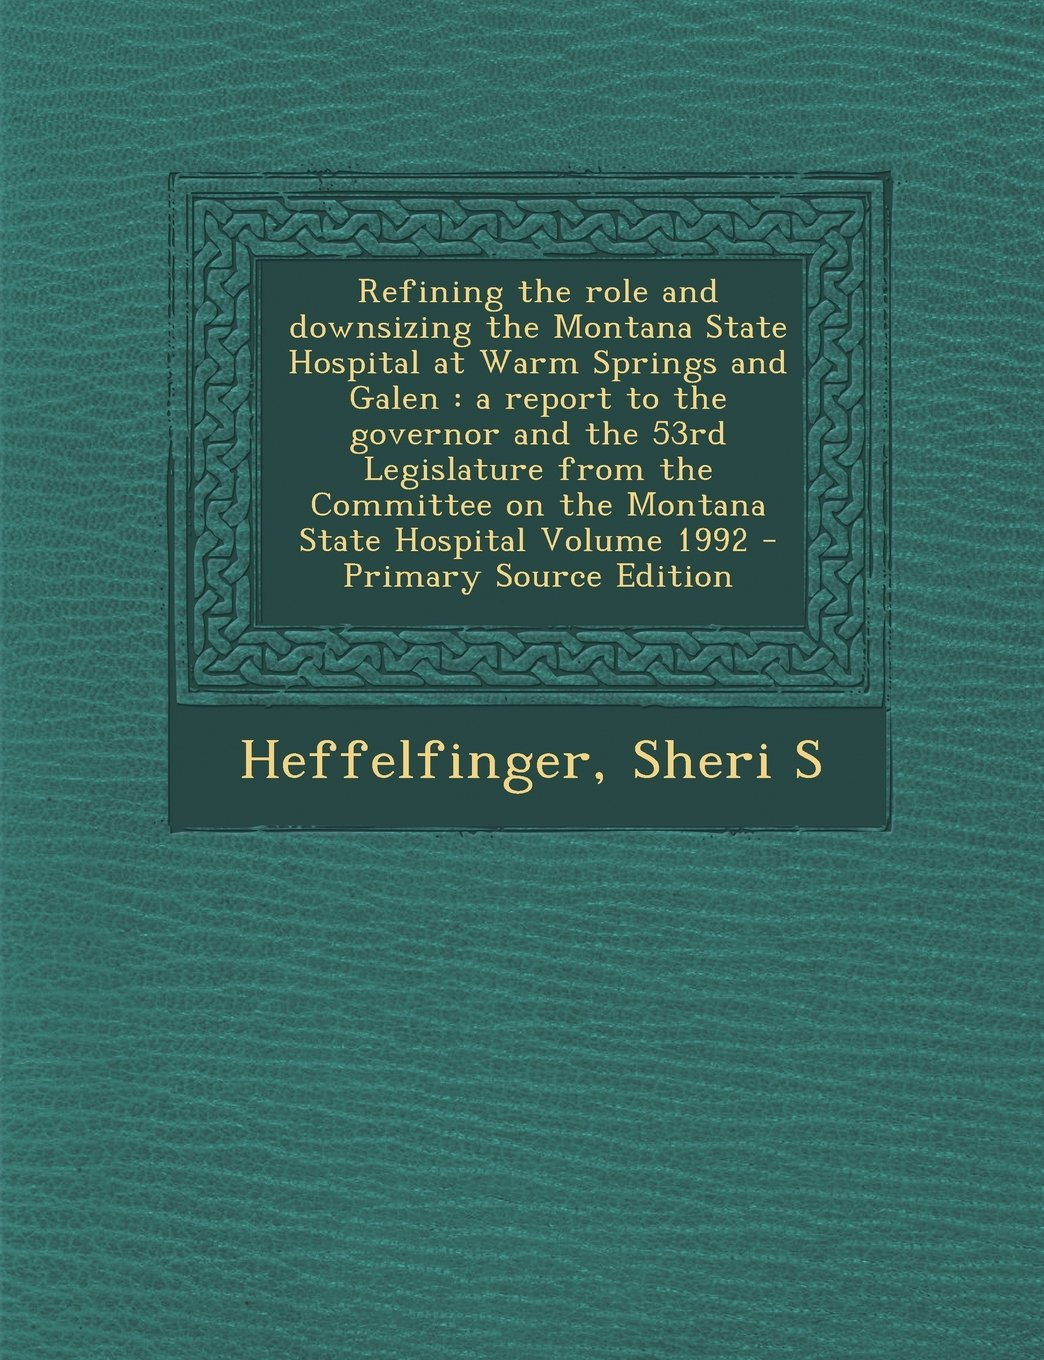 Download Refining the Role and Downsizing the Montana State Hospital at Warm Springs and Galen: A Report to the Governor and the 53rd Legislature from the Comm Text fb2 book